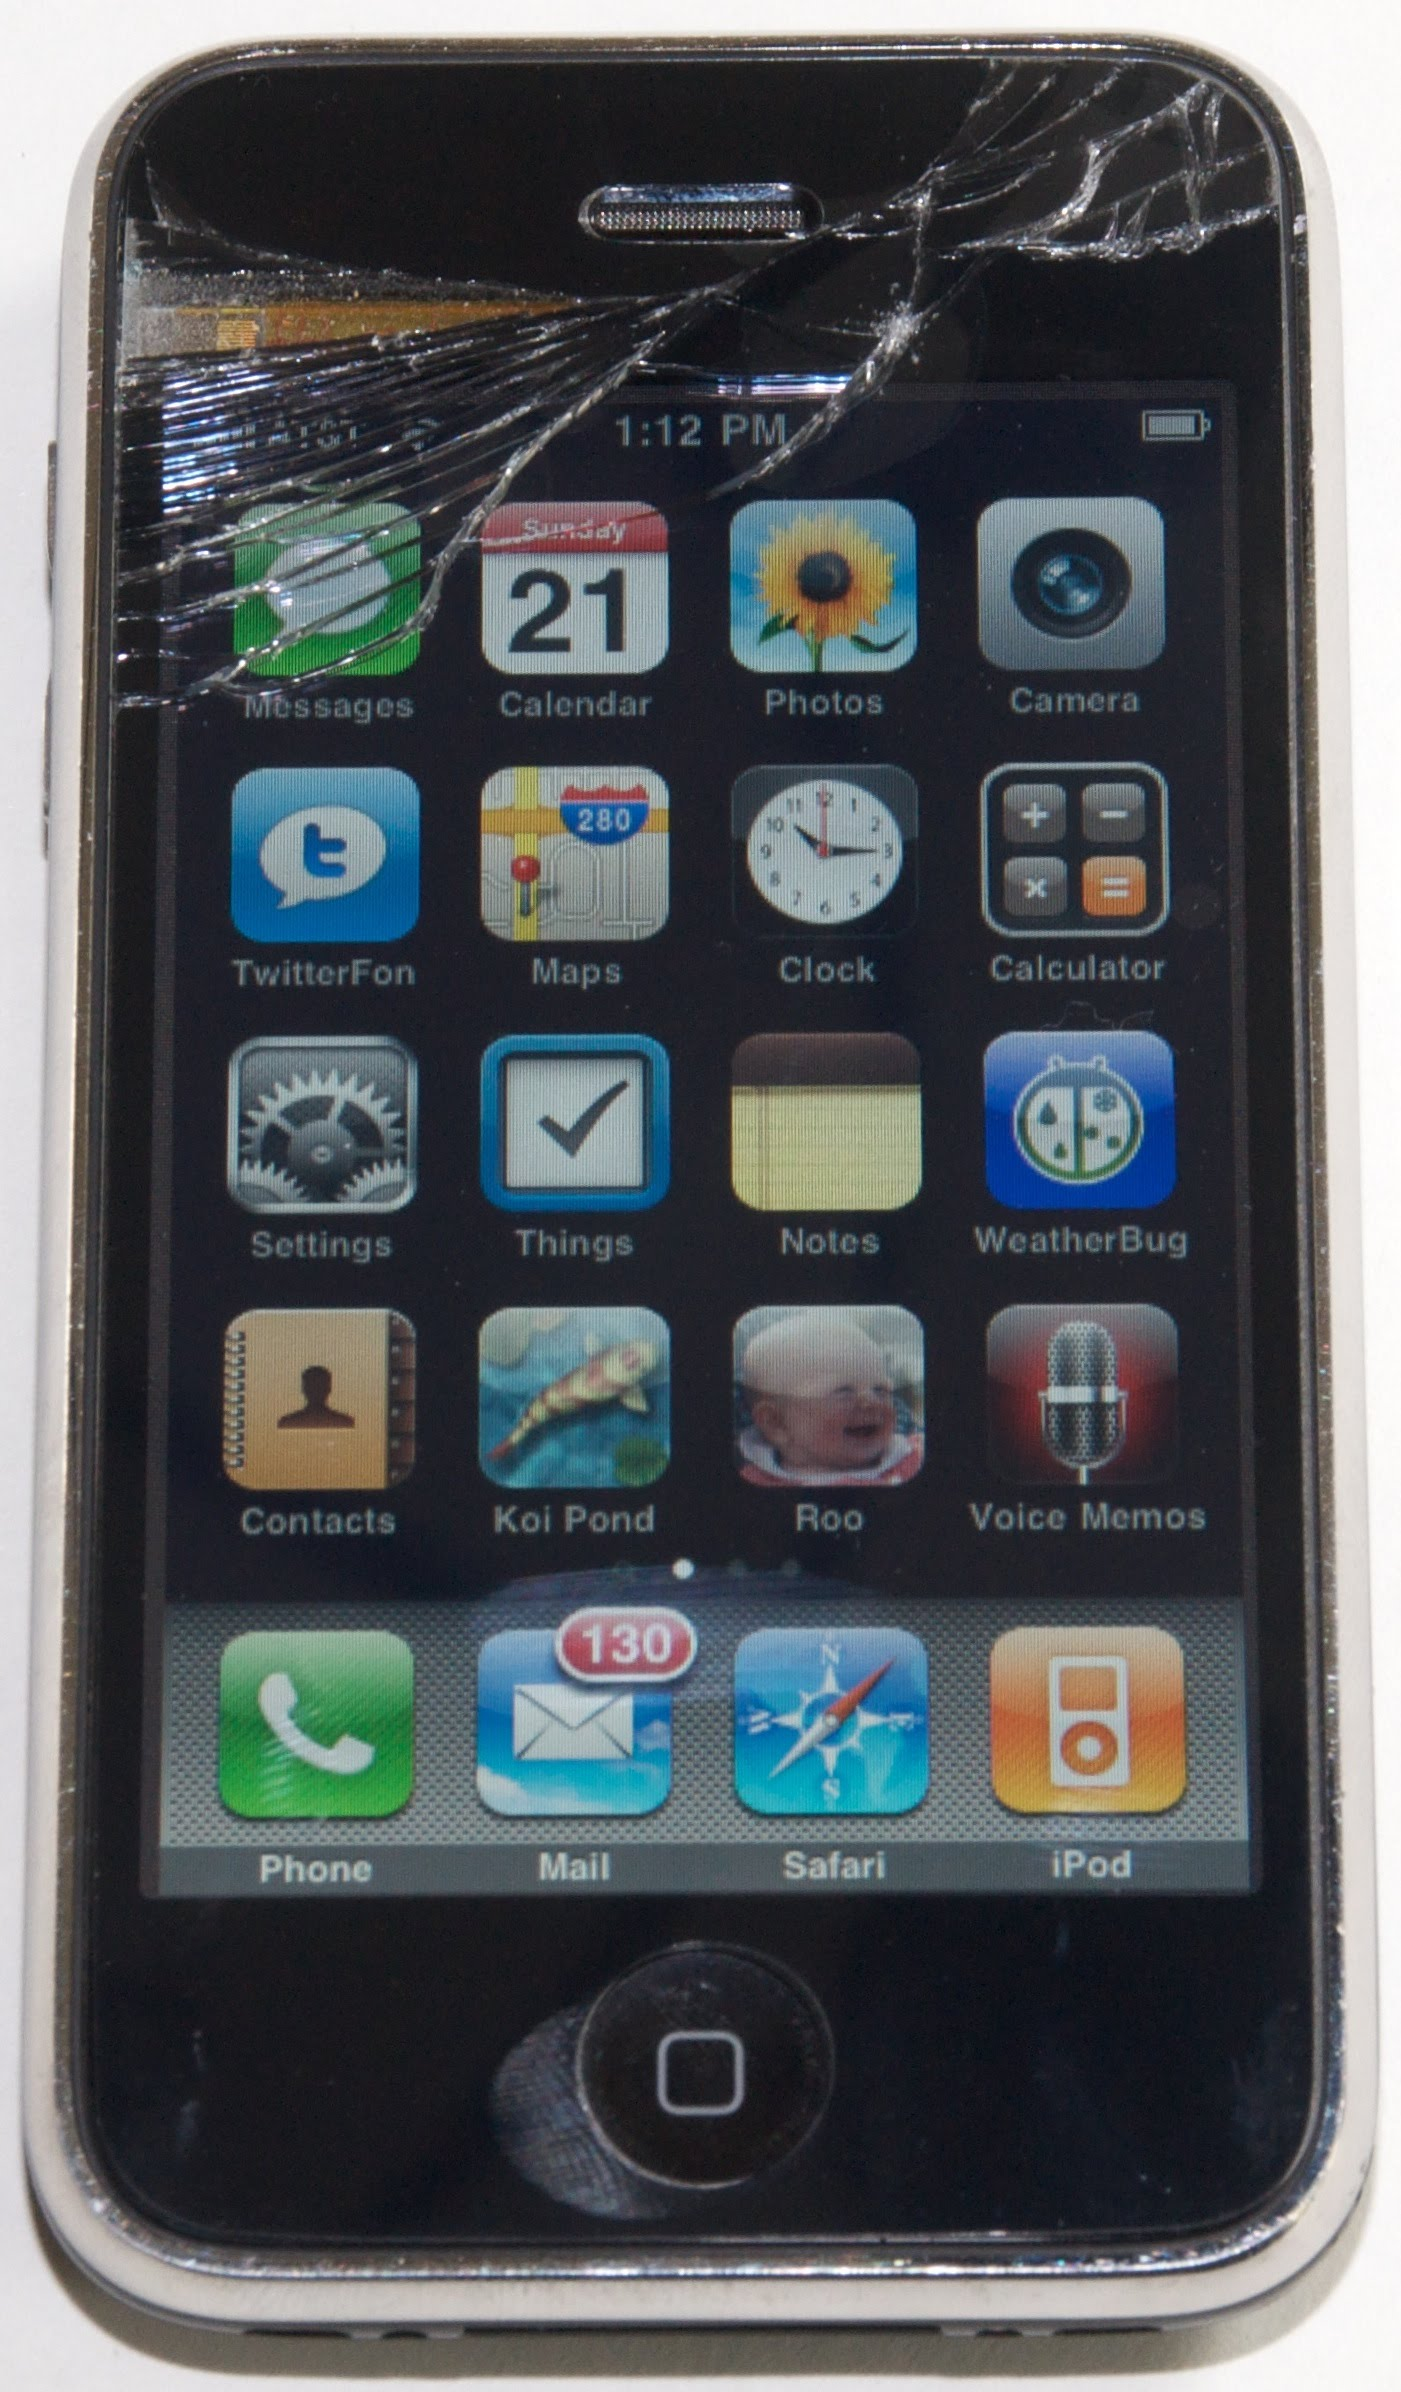 Are You Looking For Spare Iphone 4 Parts Go Gadgets The Iphone Repair